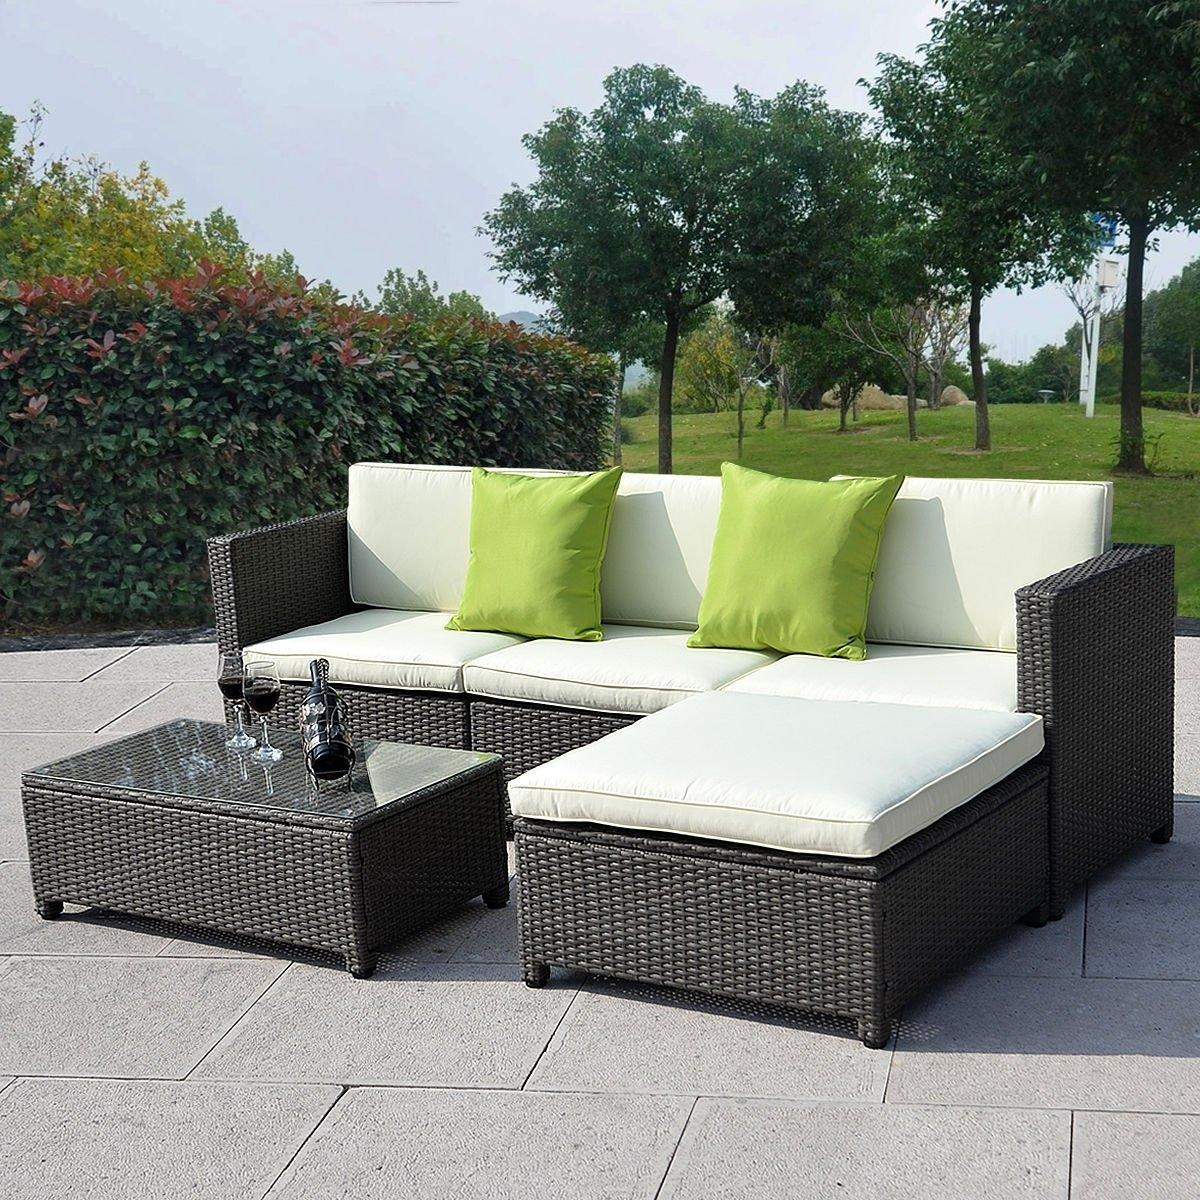 How To Decorate Outdoor Wicker Sofa | Babytimeexpo Furniture Within Black Wicker Sofas (View 5 of 20)